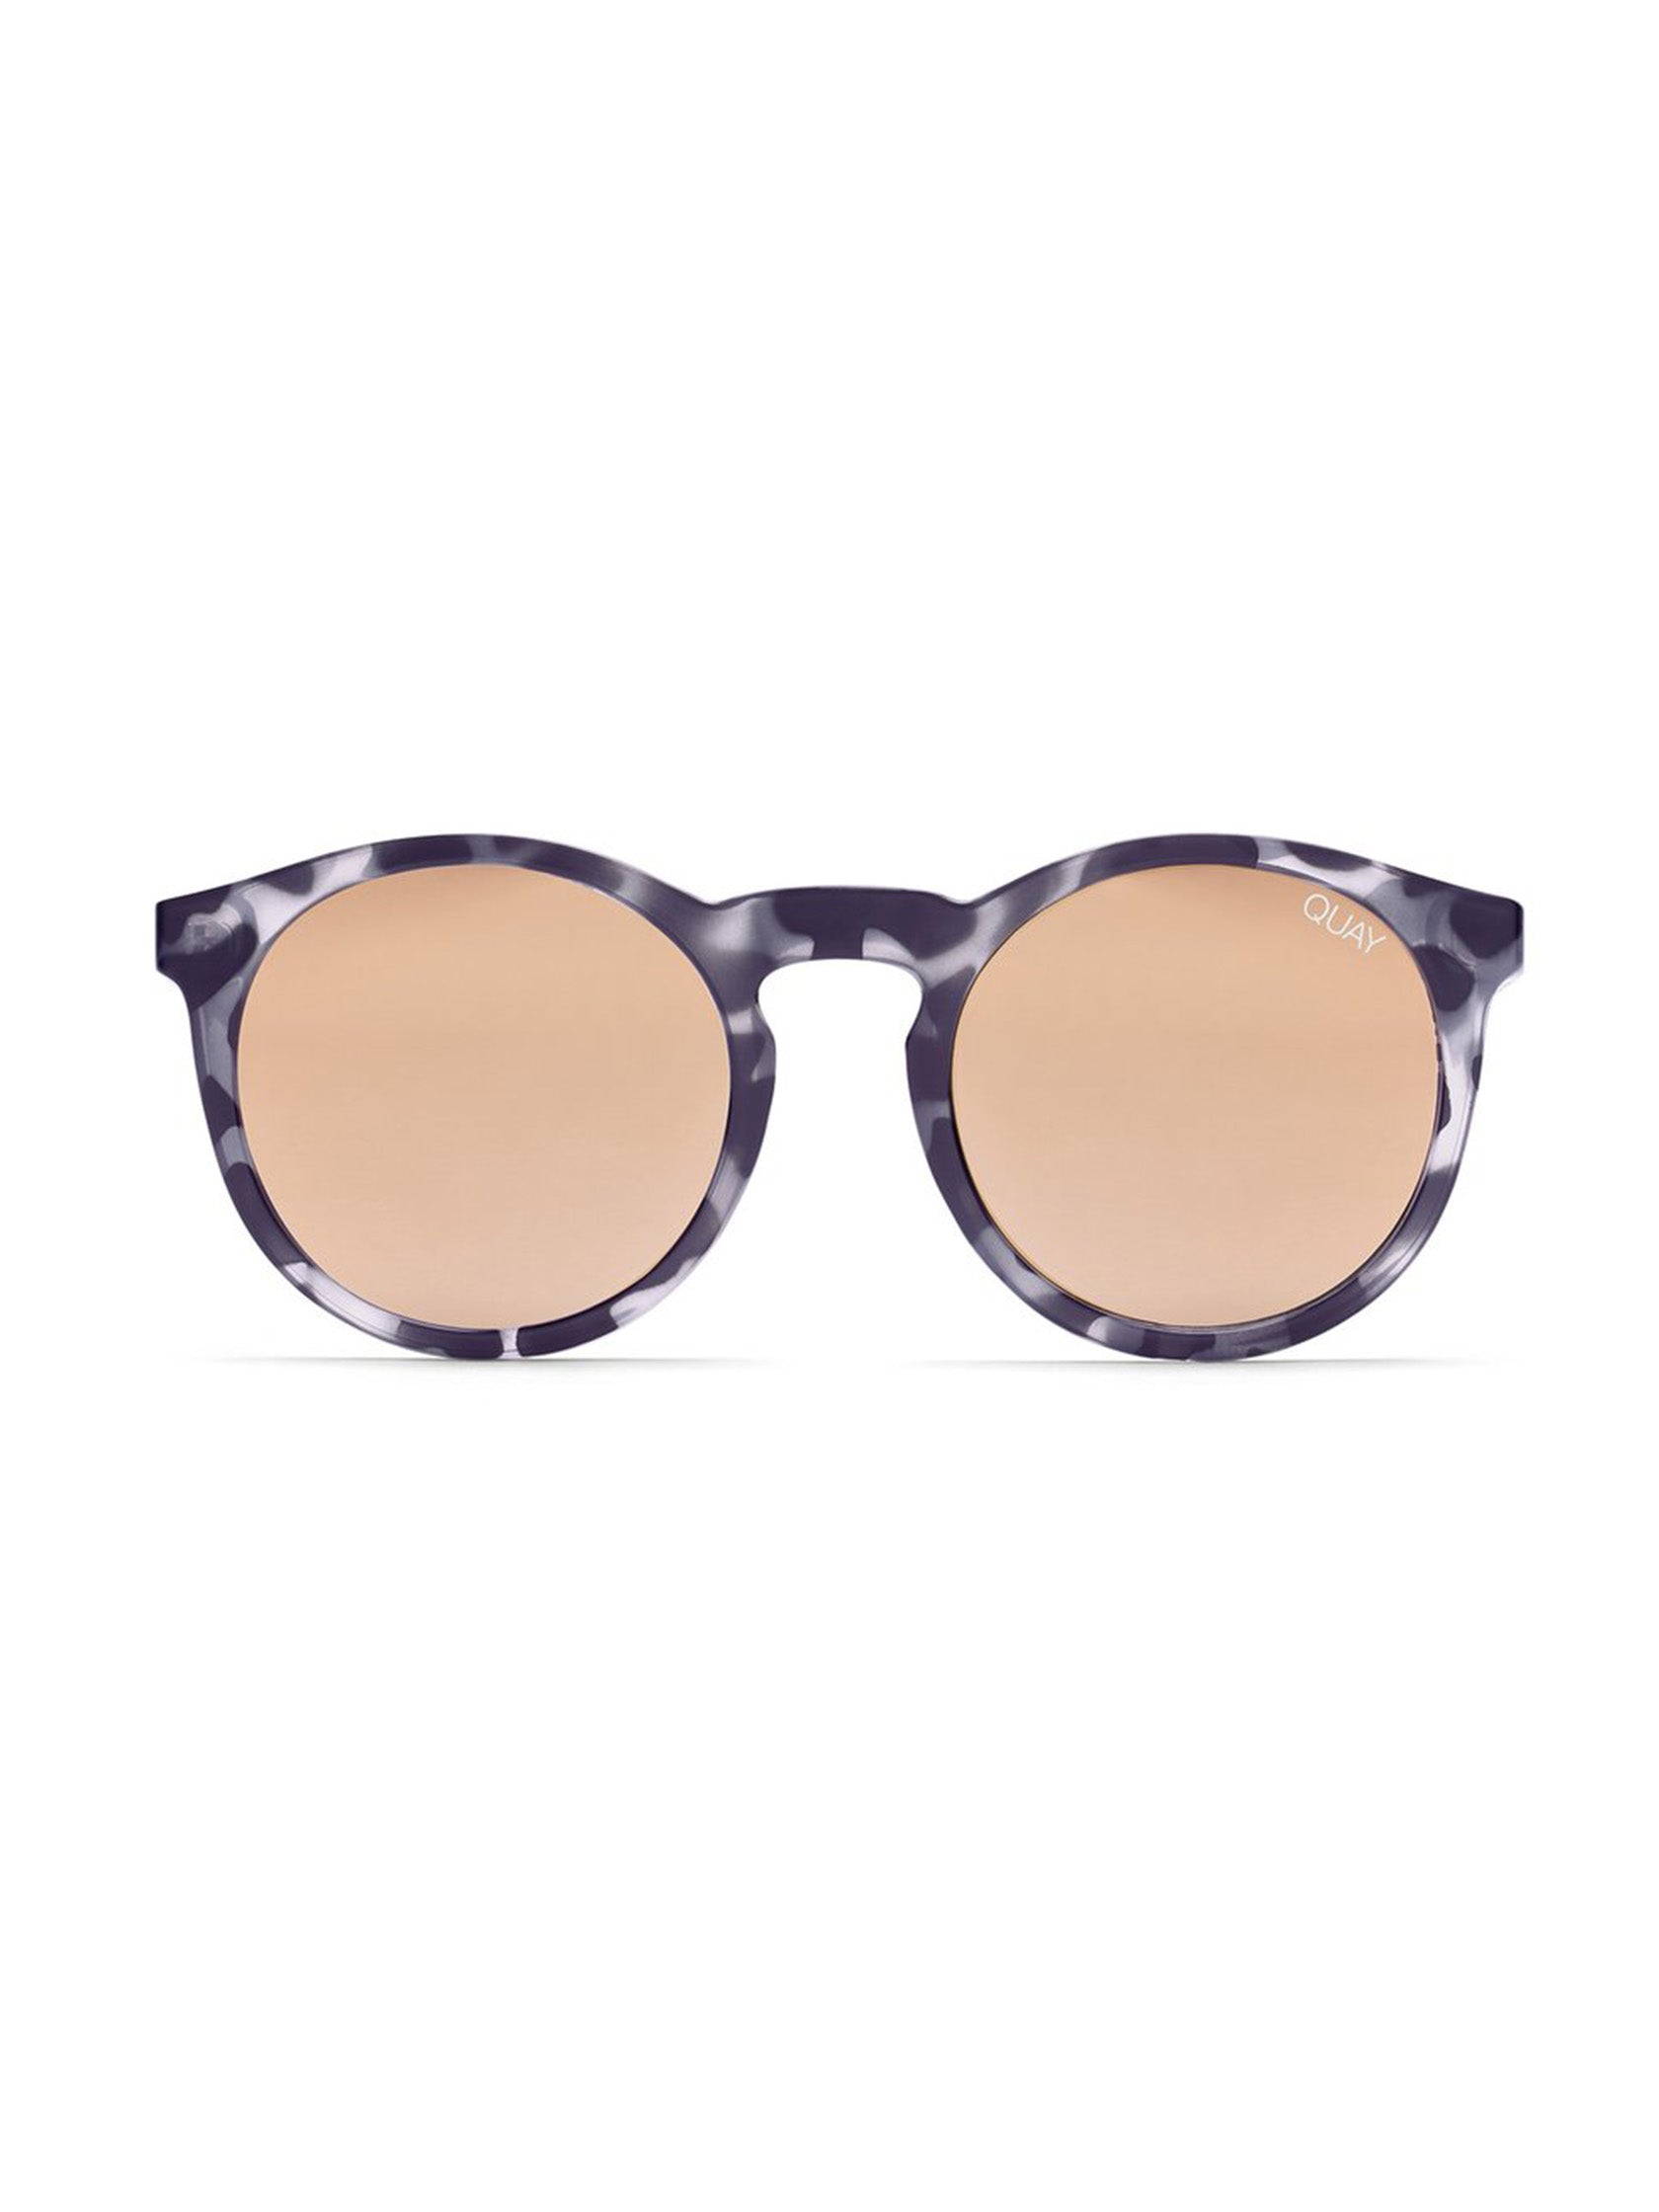 Girl outfit in a sunglasses rental from Quay Australia called Kosha Comeback Sunglasses